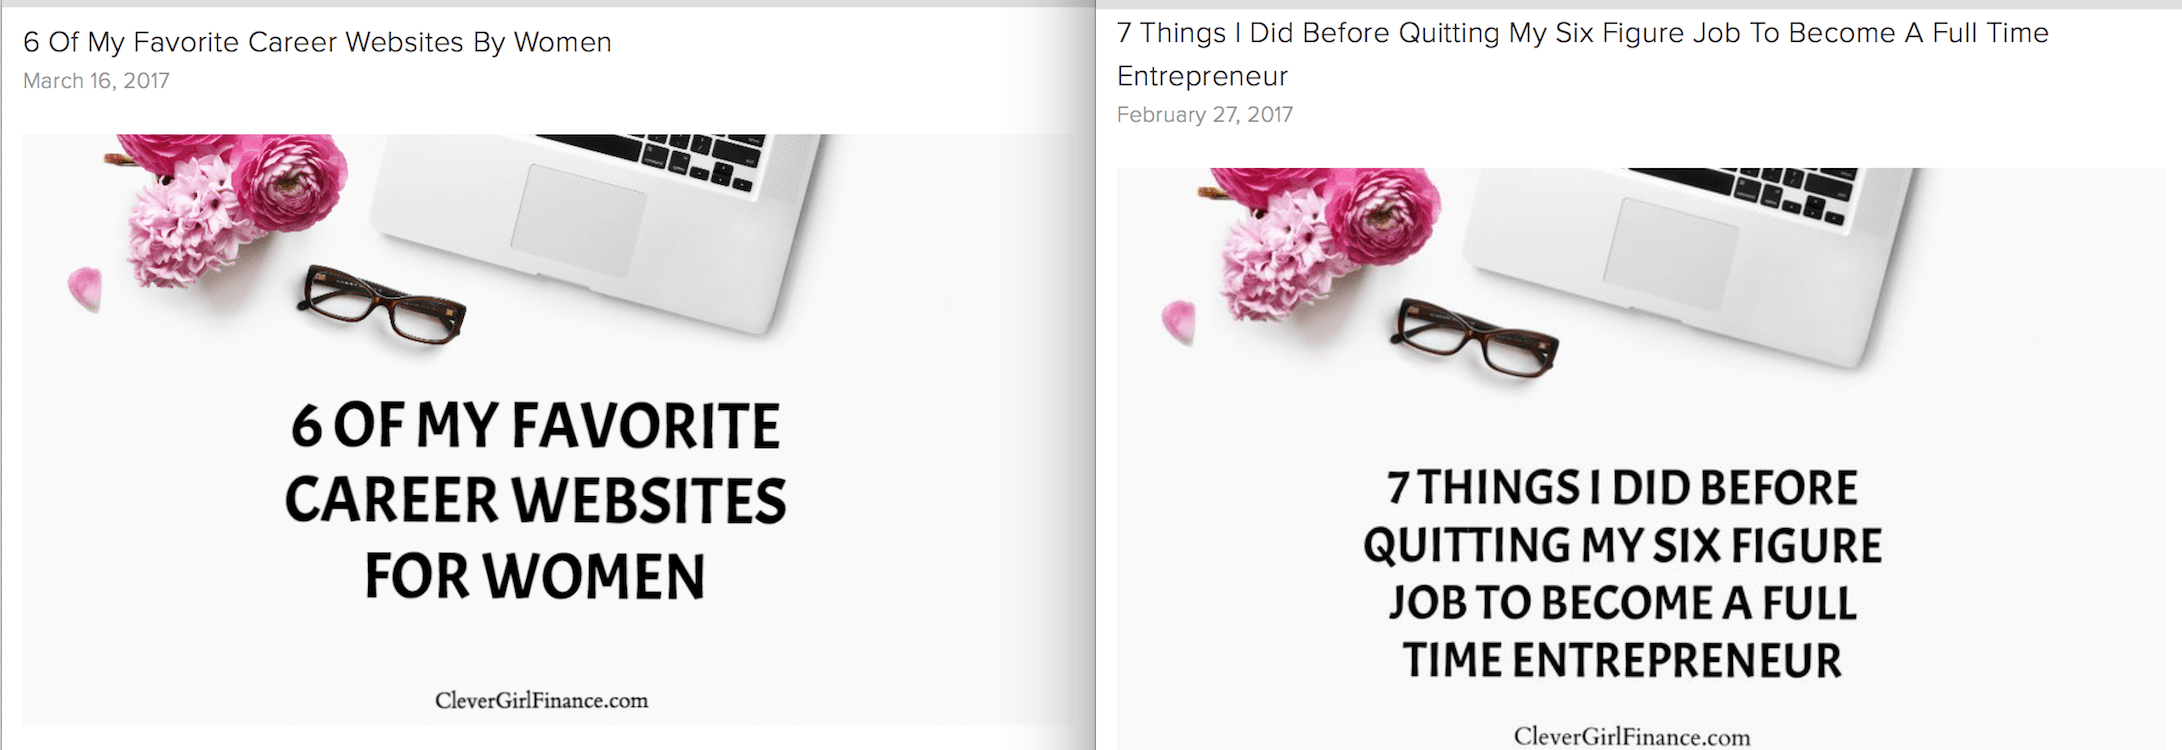 simple WP featured image